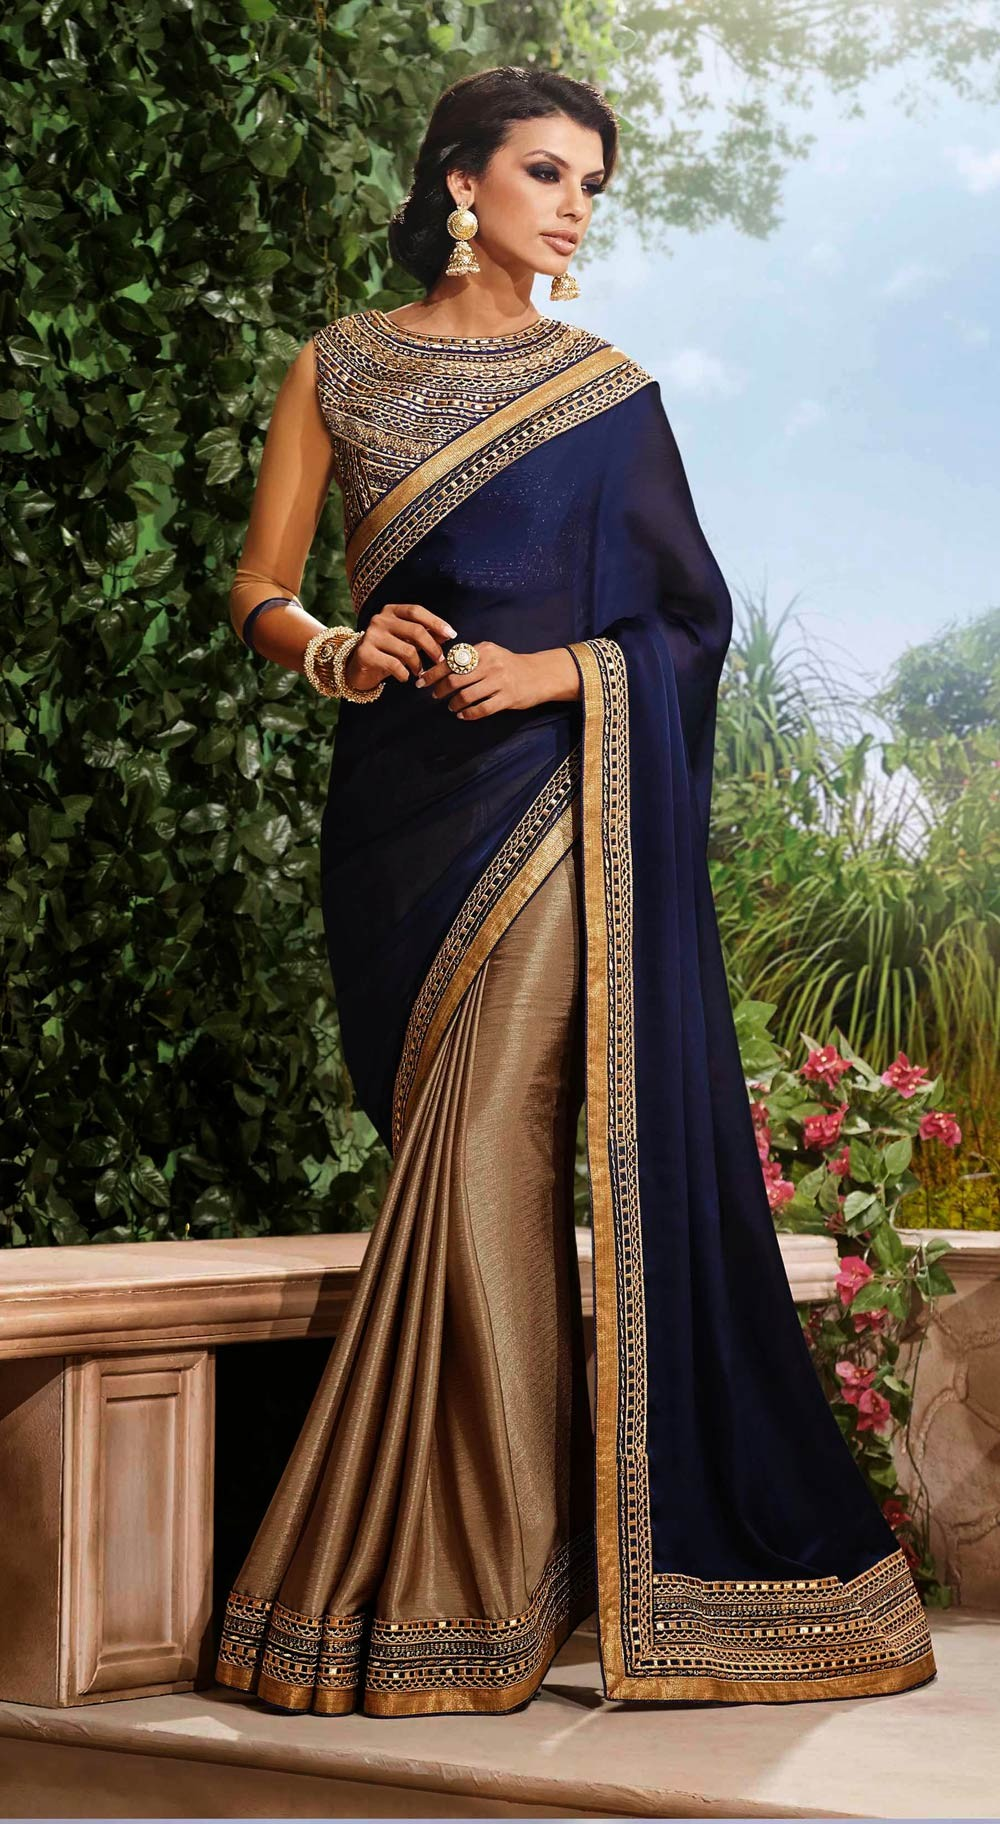 Latest Indian Sarees Designs Collection 2017-18 For Girls